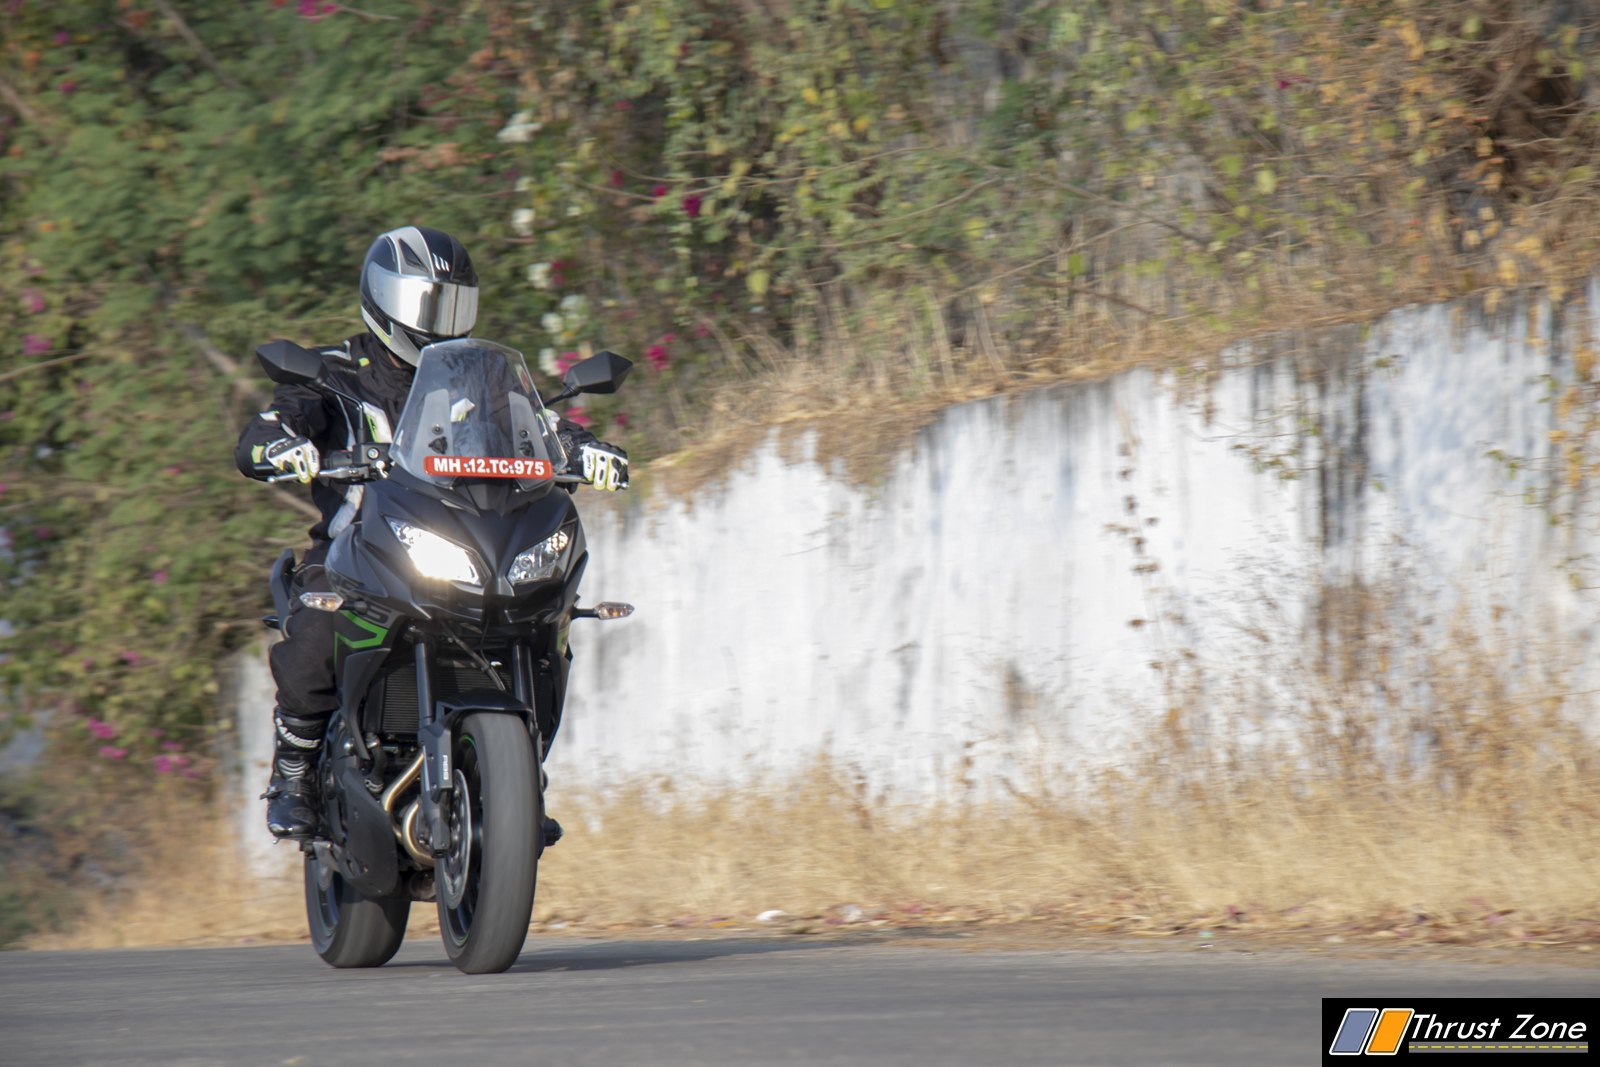 2019 Kawasaki Versys 650 India Review (2)